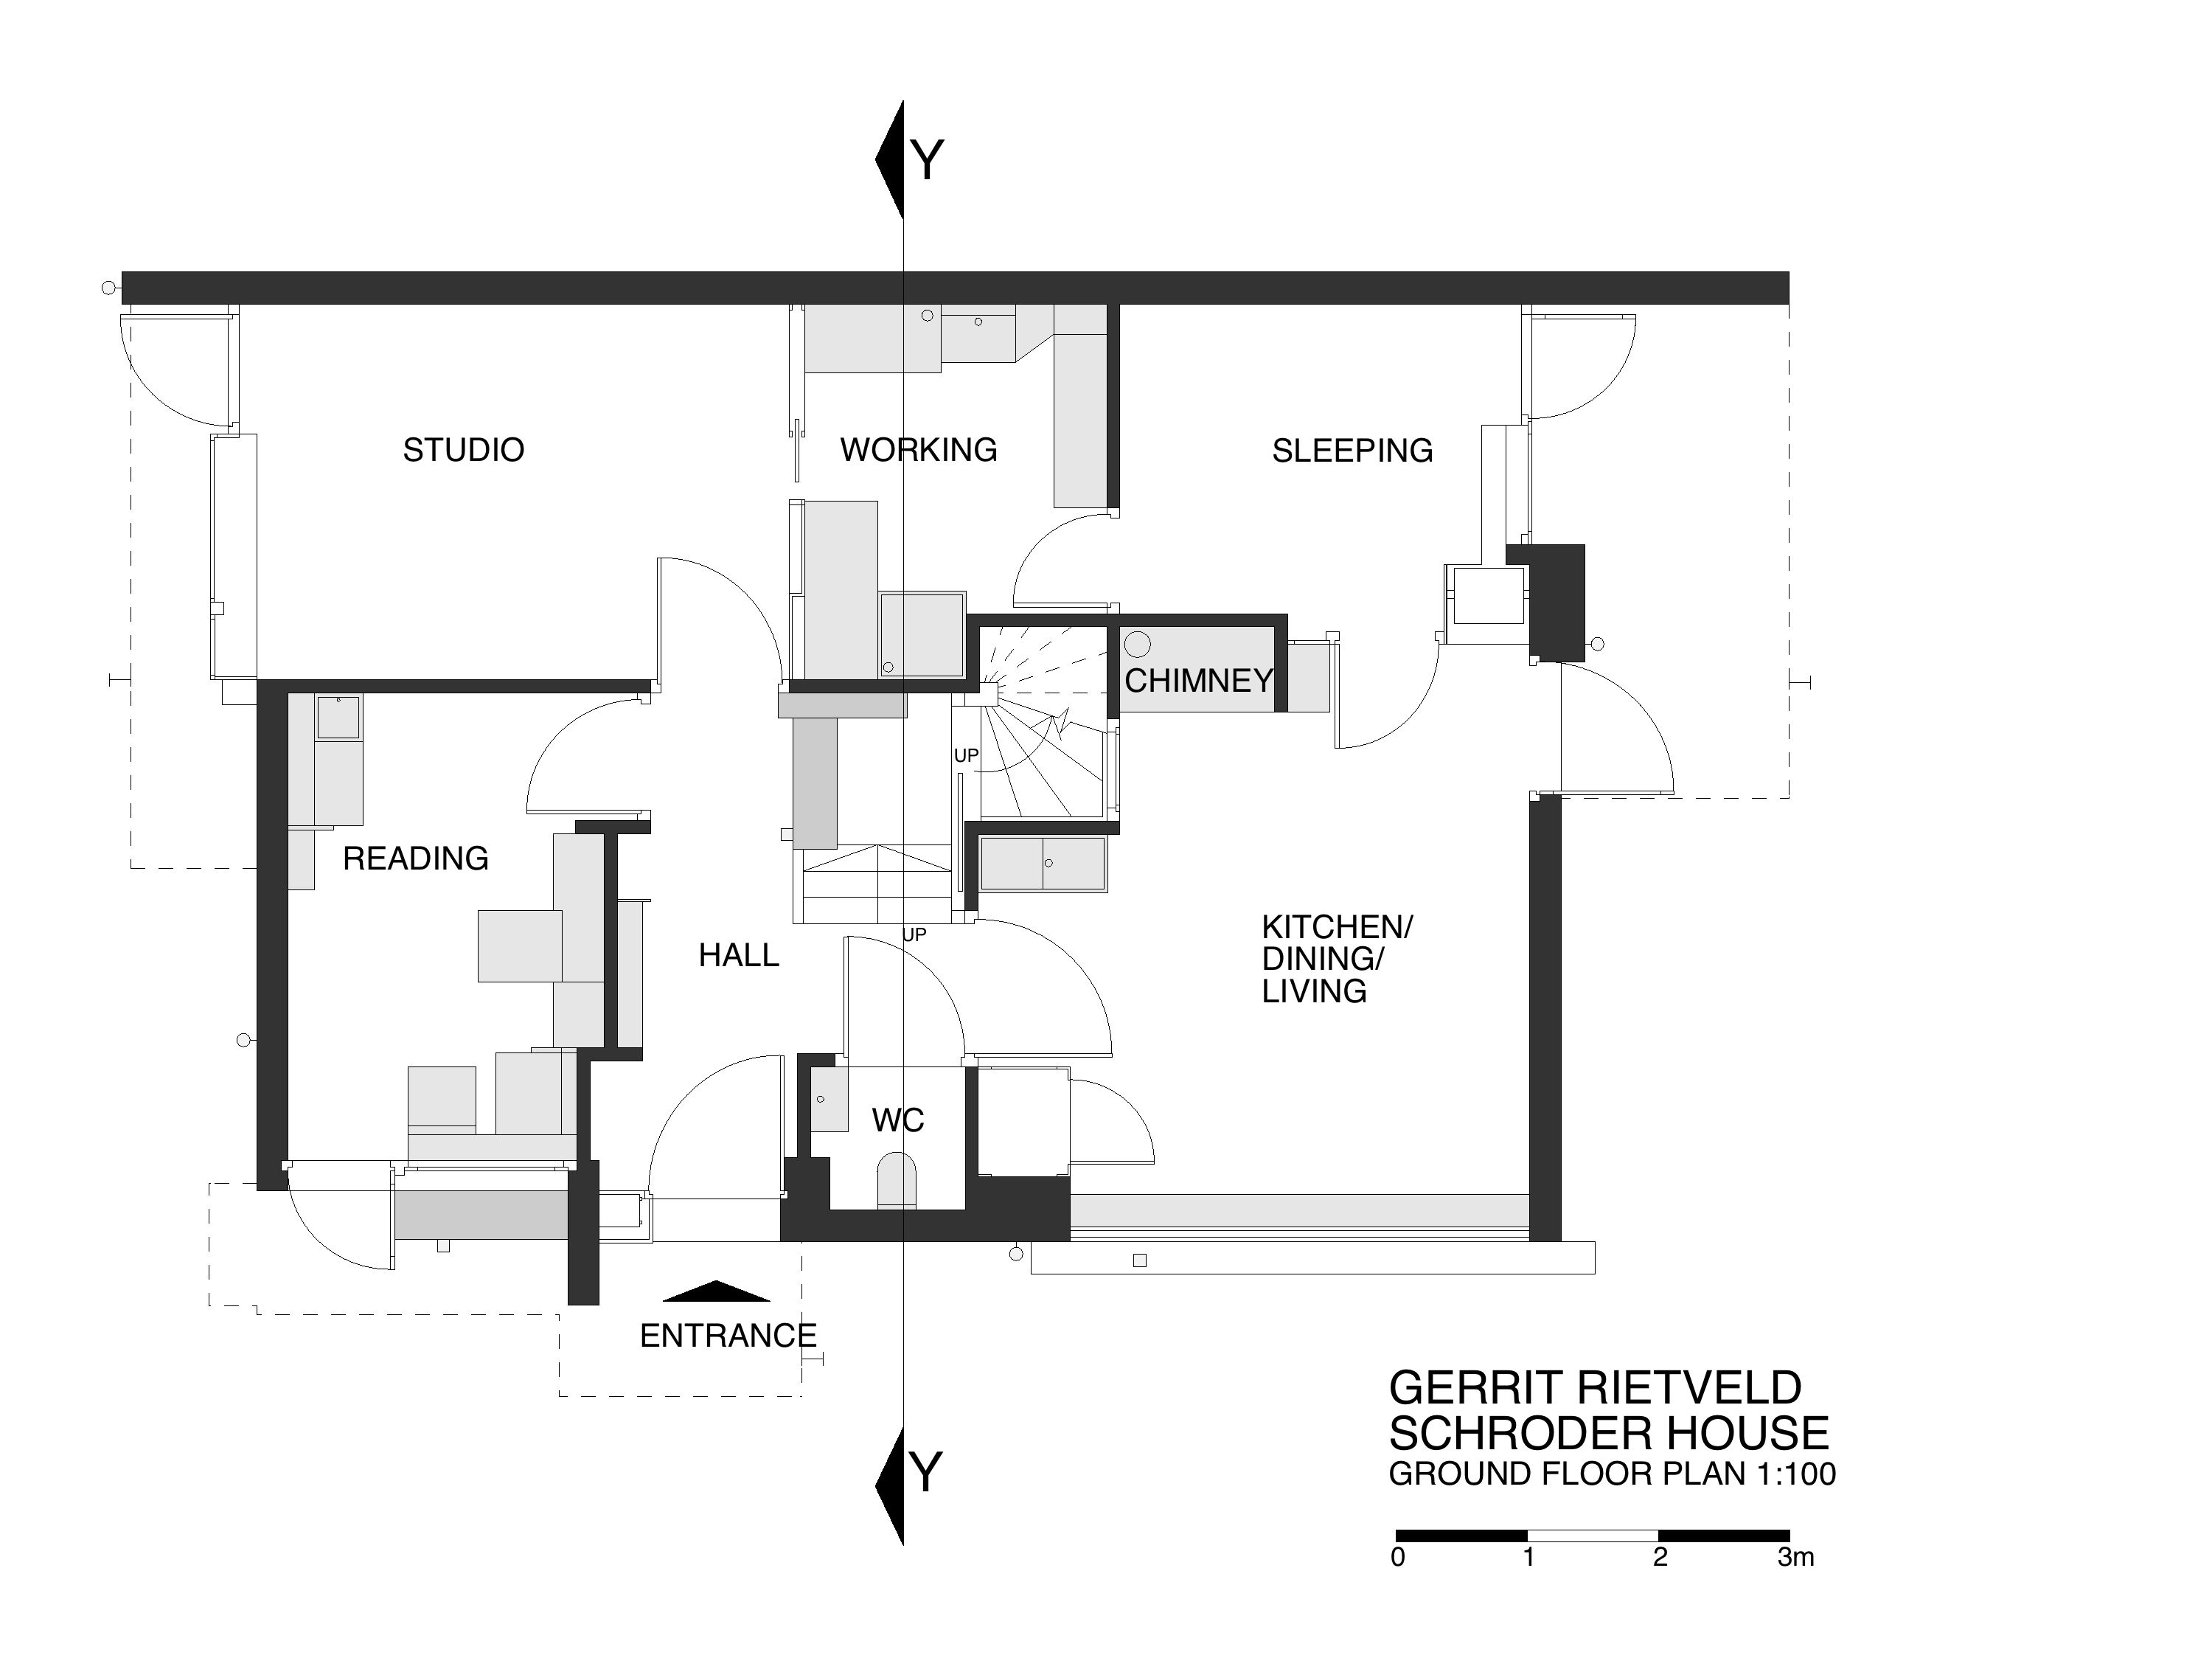 No 32 schroeder house elevation and plans images frompo for Ad house plans